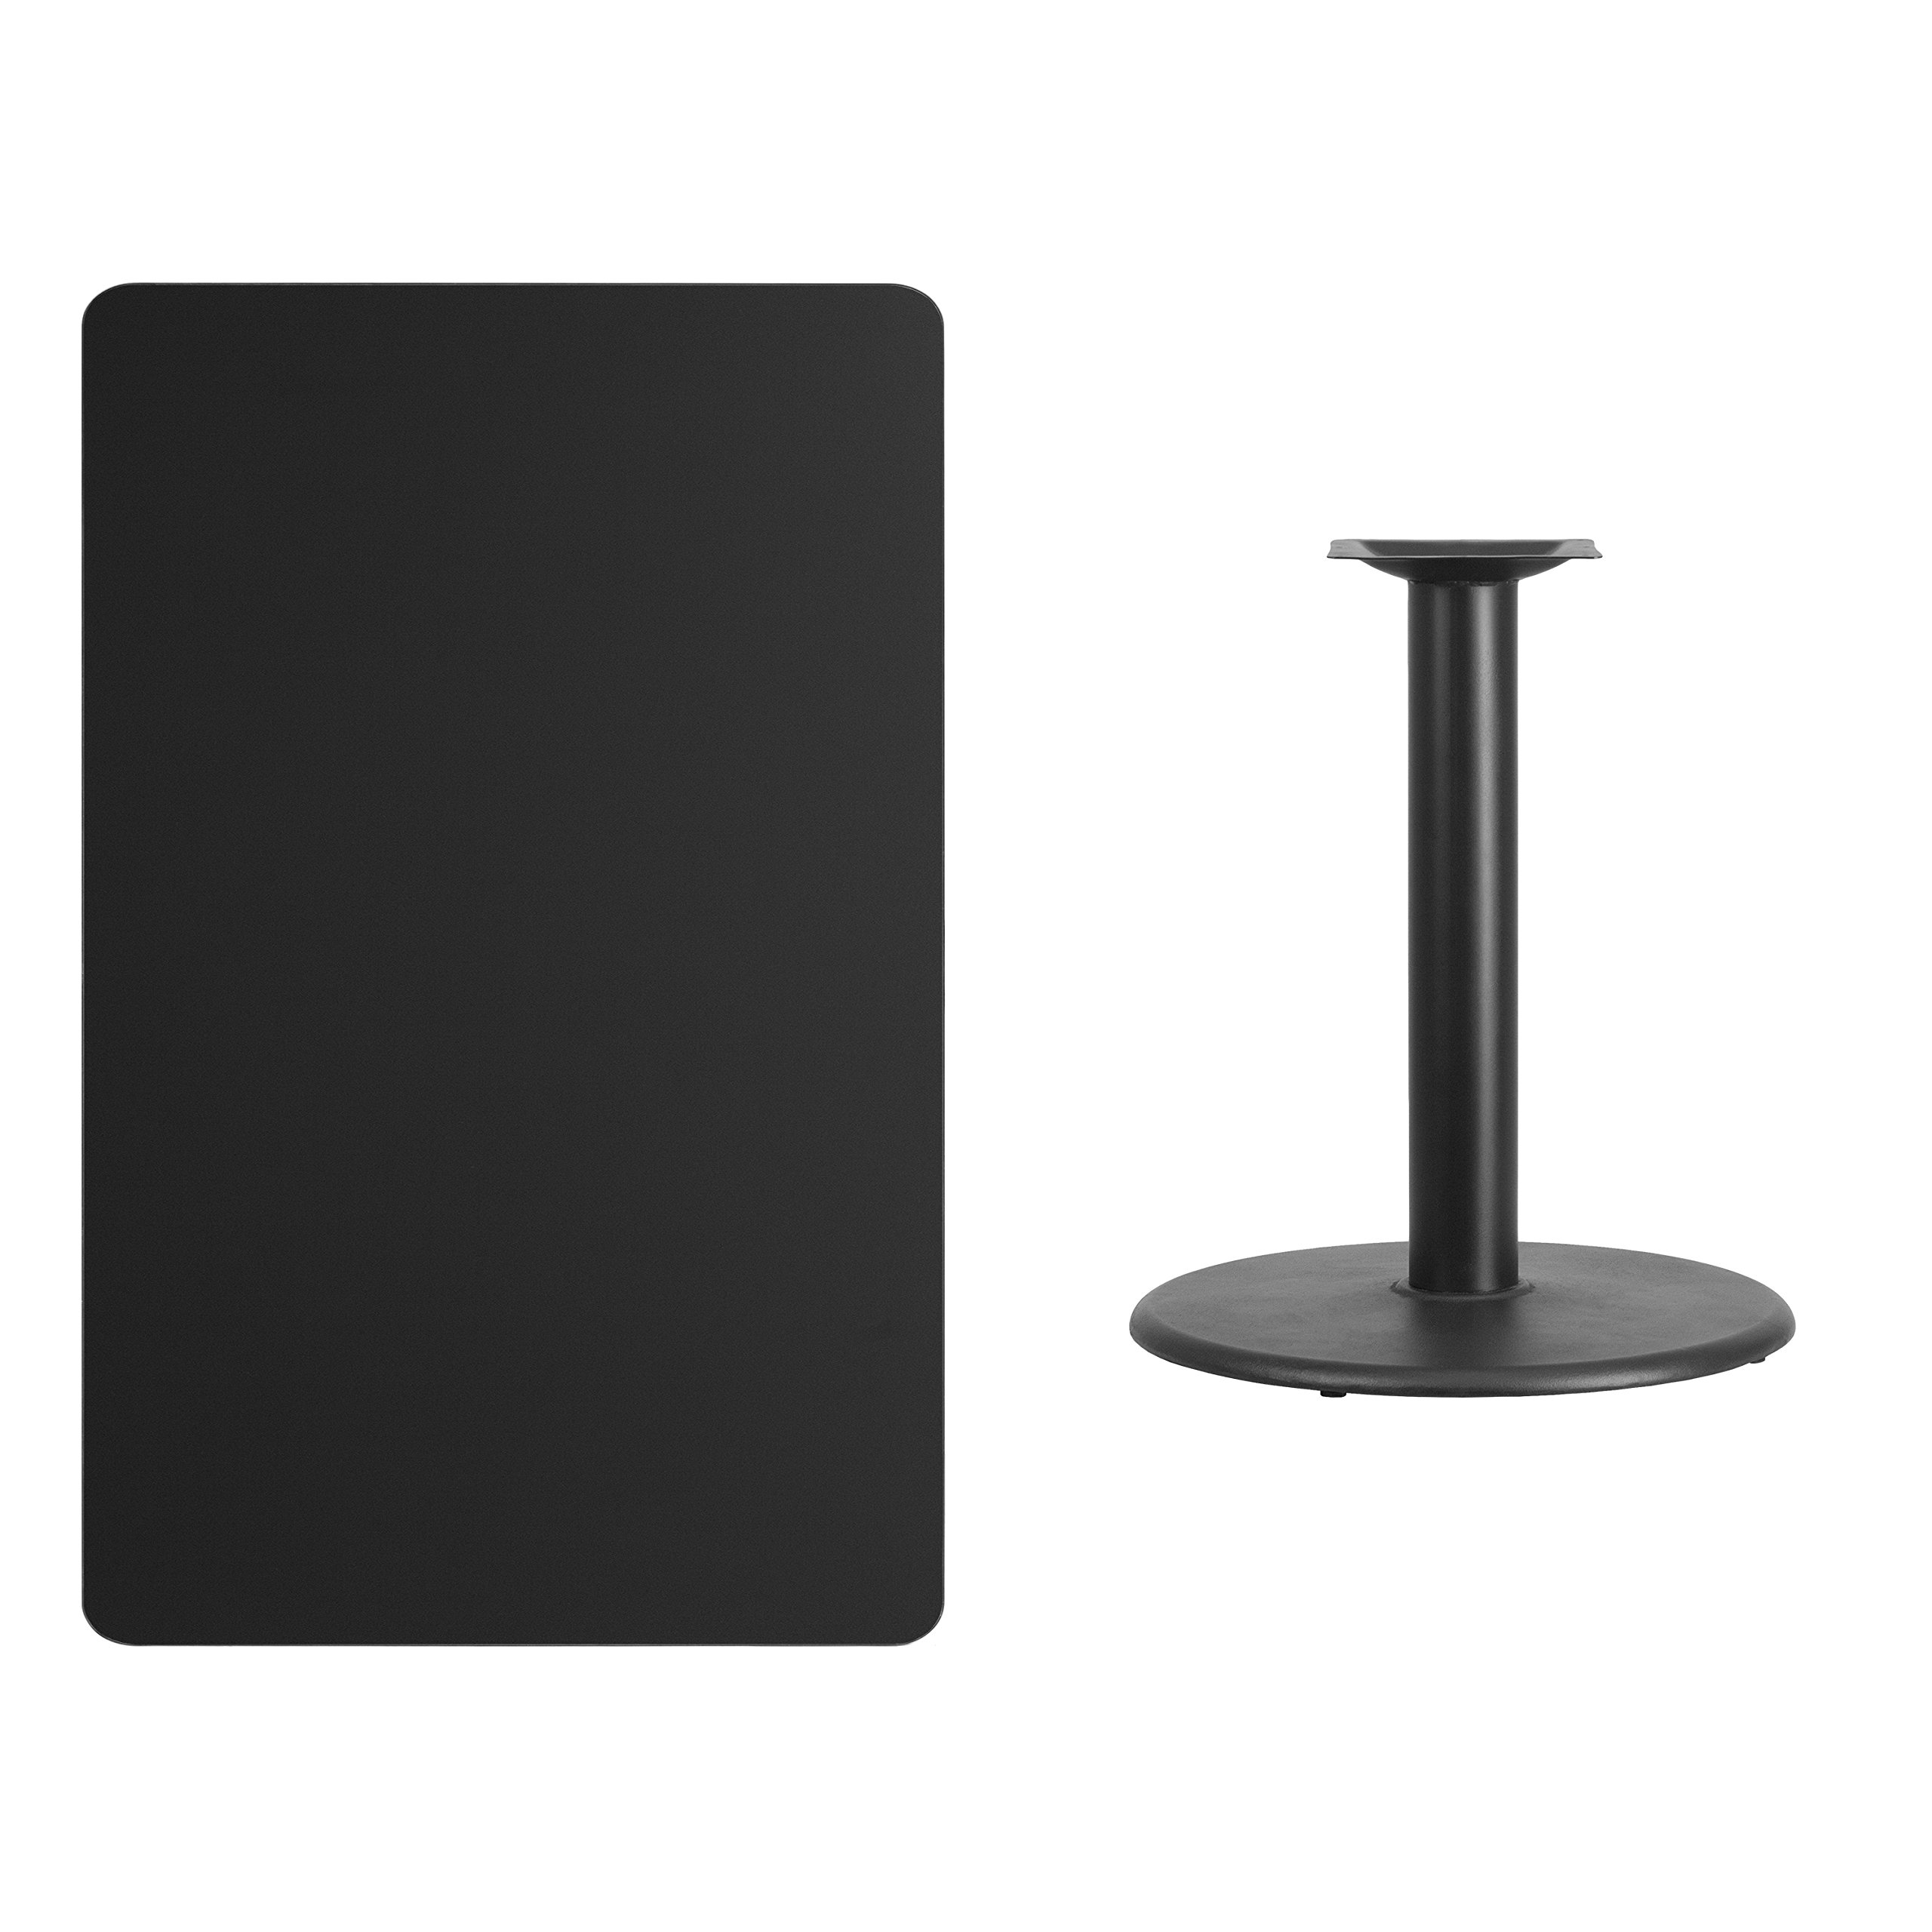 30'' x 48'' Rectangular Black Laminate Table Top with 24'' Round Table Height Base